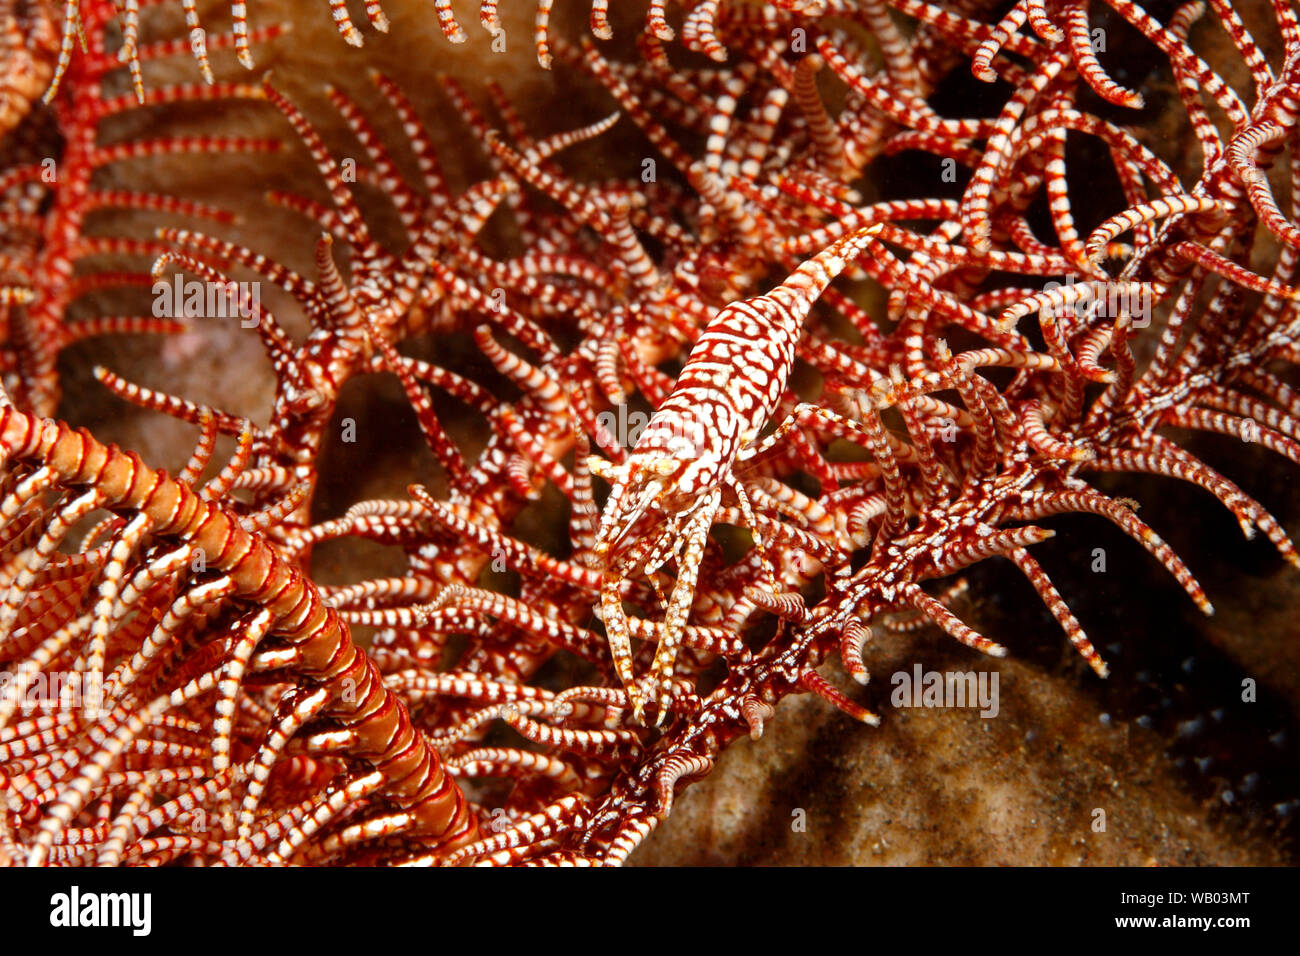 red-white-leopard-crinoid-shrimp-laomenes-pardus-tulamben-bali-indonesia-bali-sea-indian-ocean-WB03MT.jpg